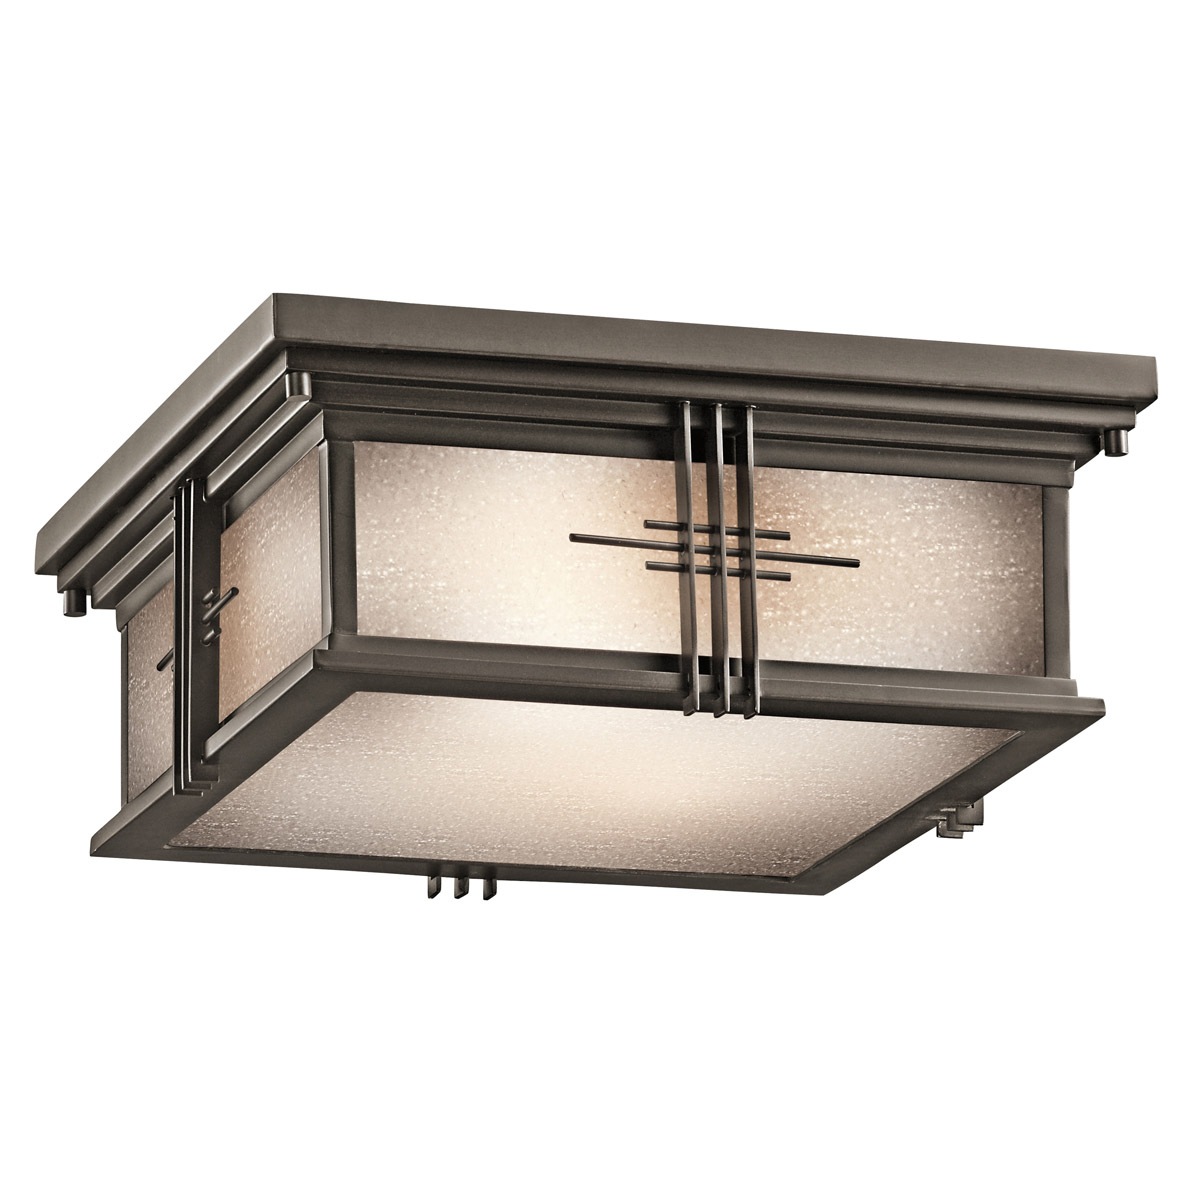 49164oz portman square outdoor flush mount ceiling fixture kichler 49164oz portman square outdoor flush mount ceiling fixture aloadofball Images